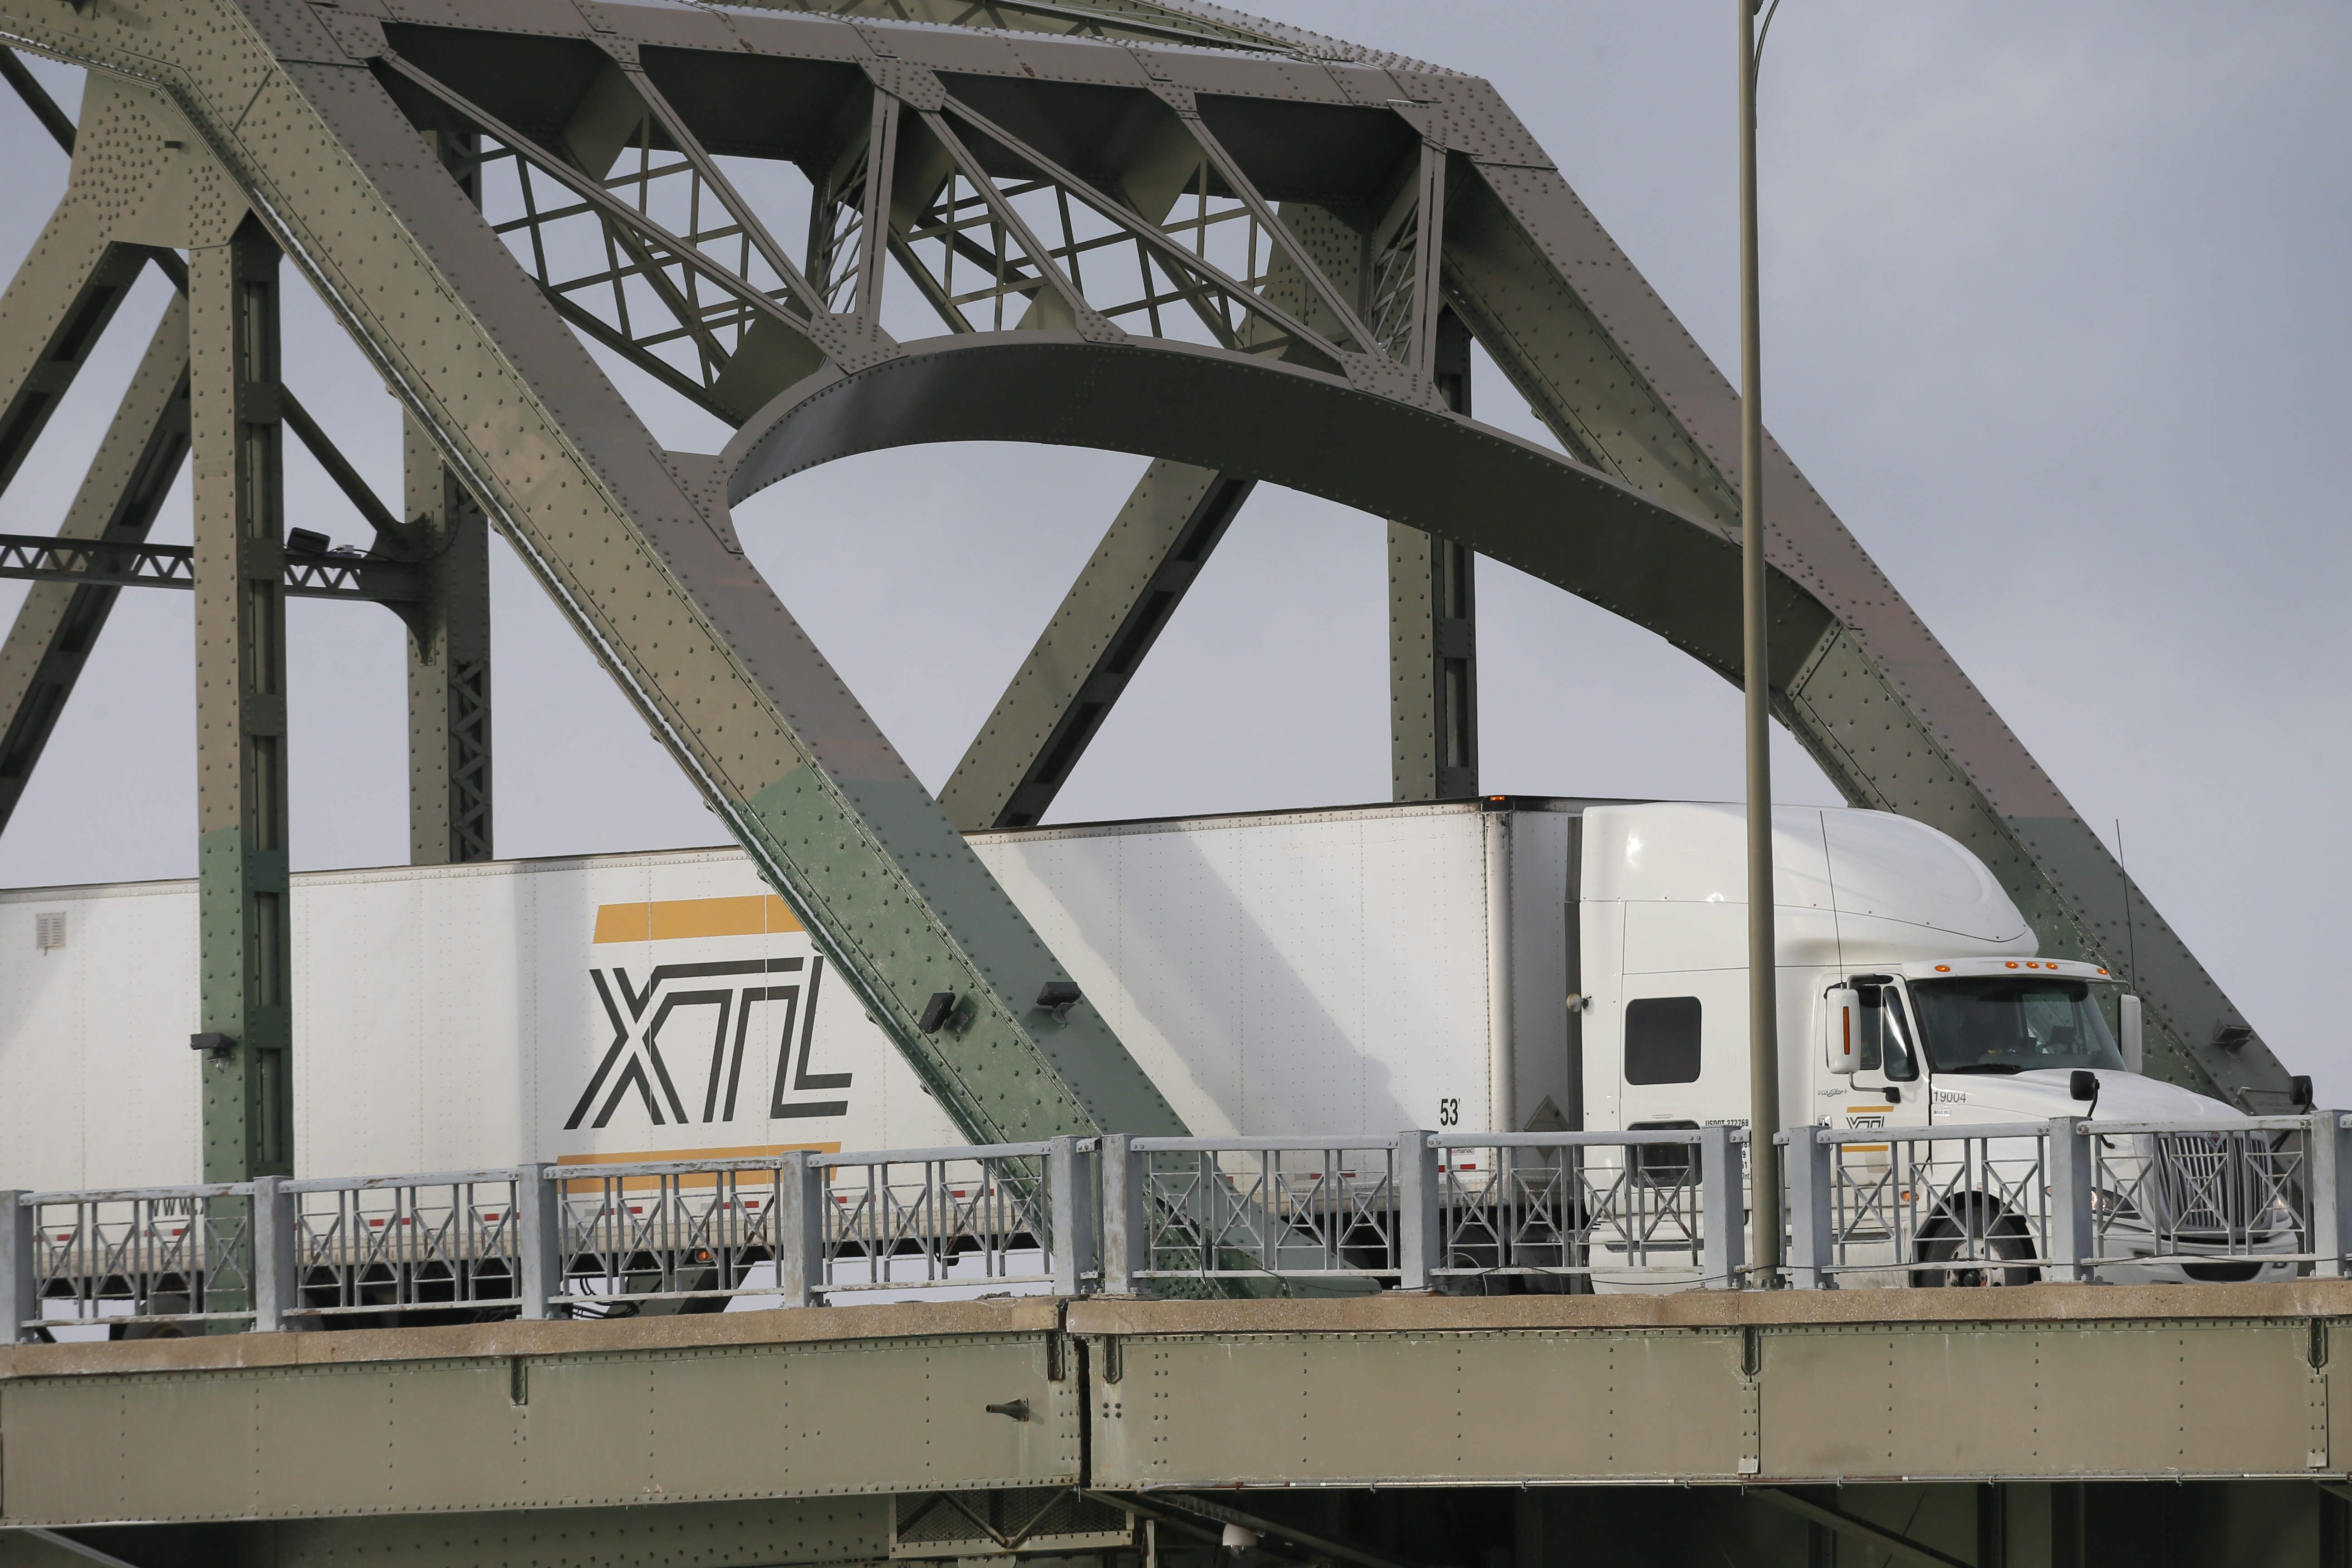 Inspection of commercial trucks in Fort Erie will make delays on the bridge less likely. (Buffalo News file photo)